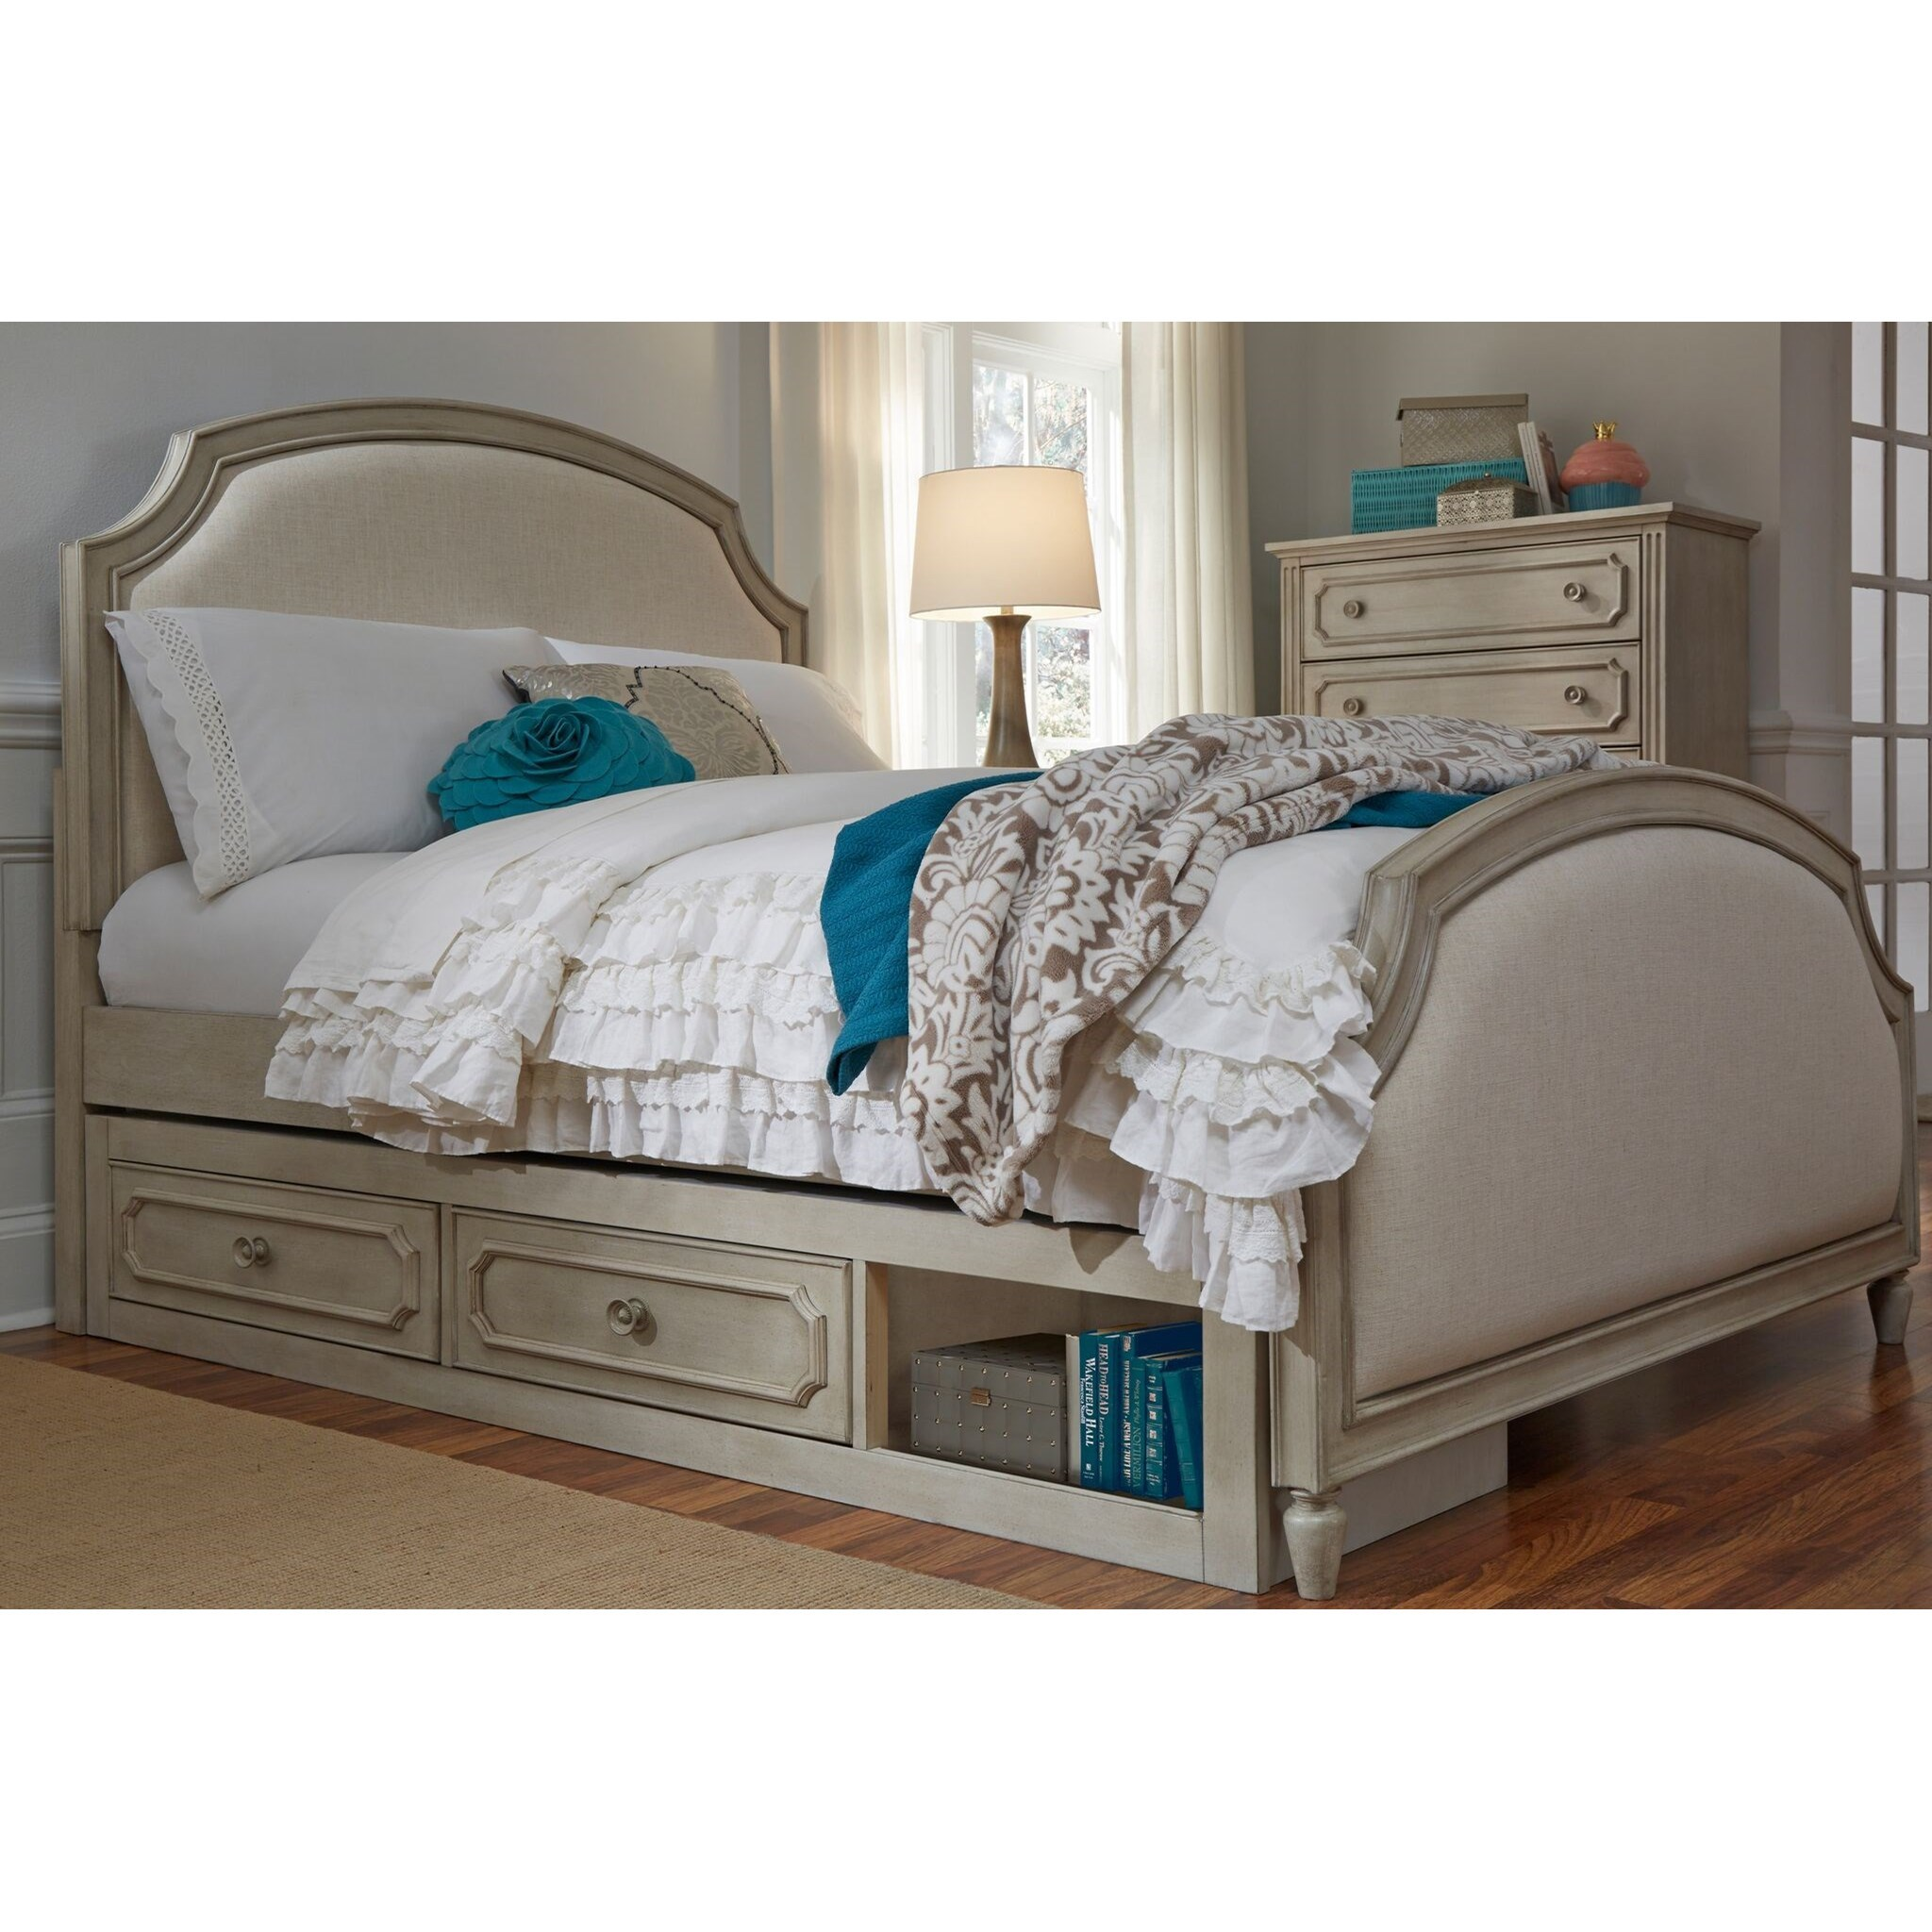 Twin Upholstered Panel Bed